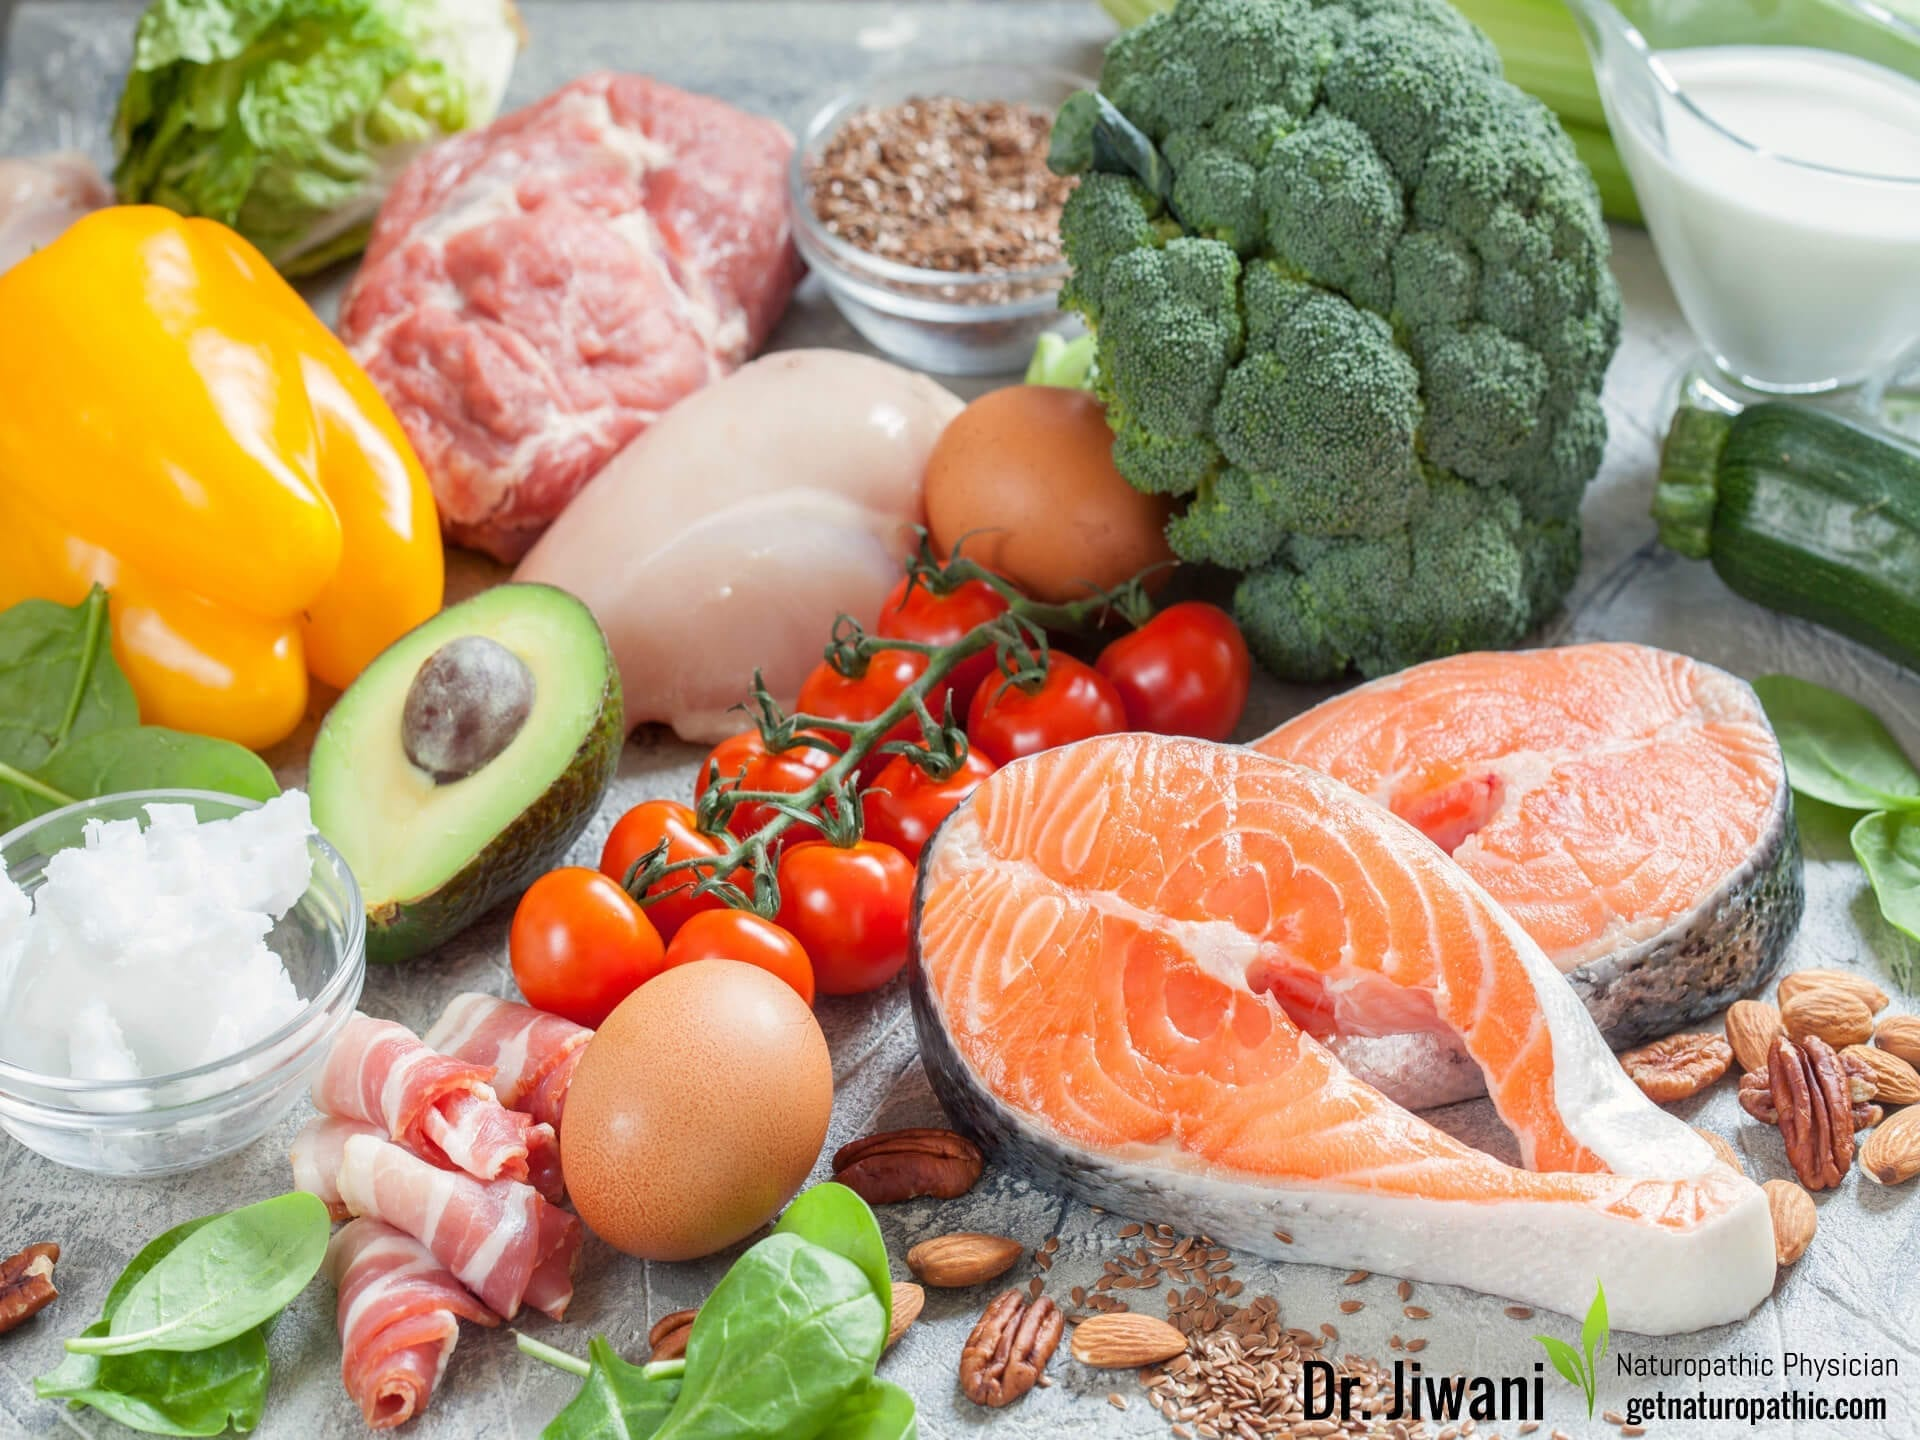 Dr Jiwani Keto Diet Food List for Food Allergies* | Dr. Jiwani's Naturopathic Nuggets Blog